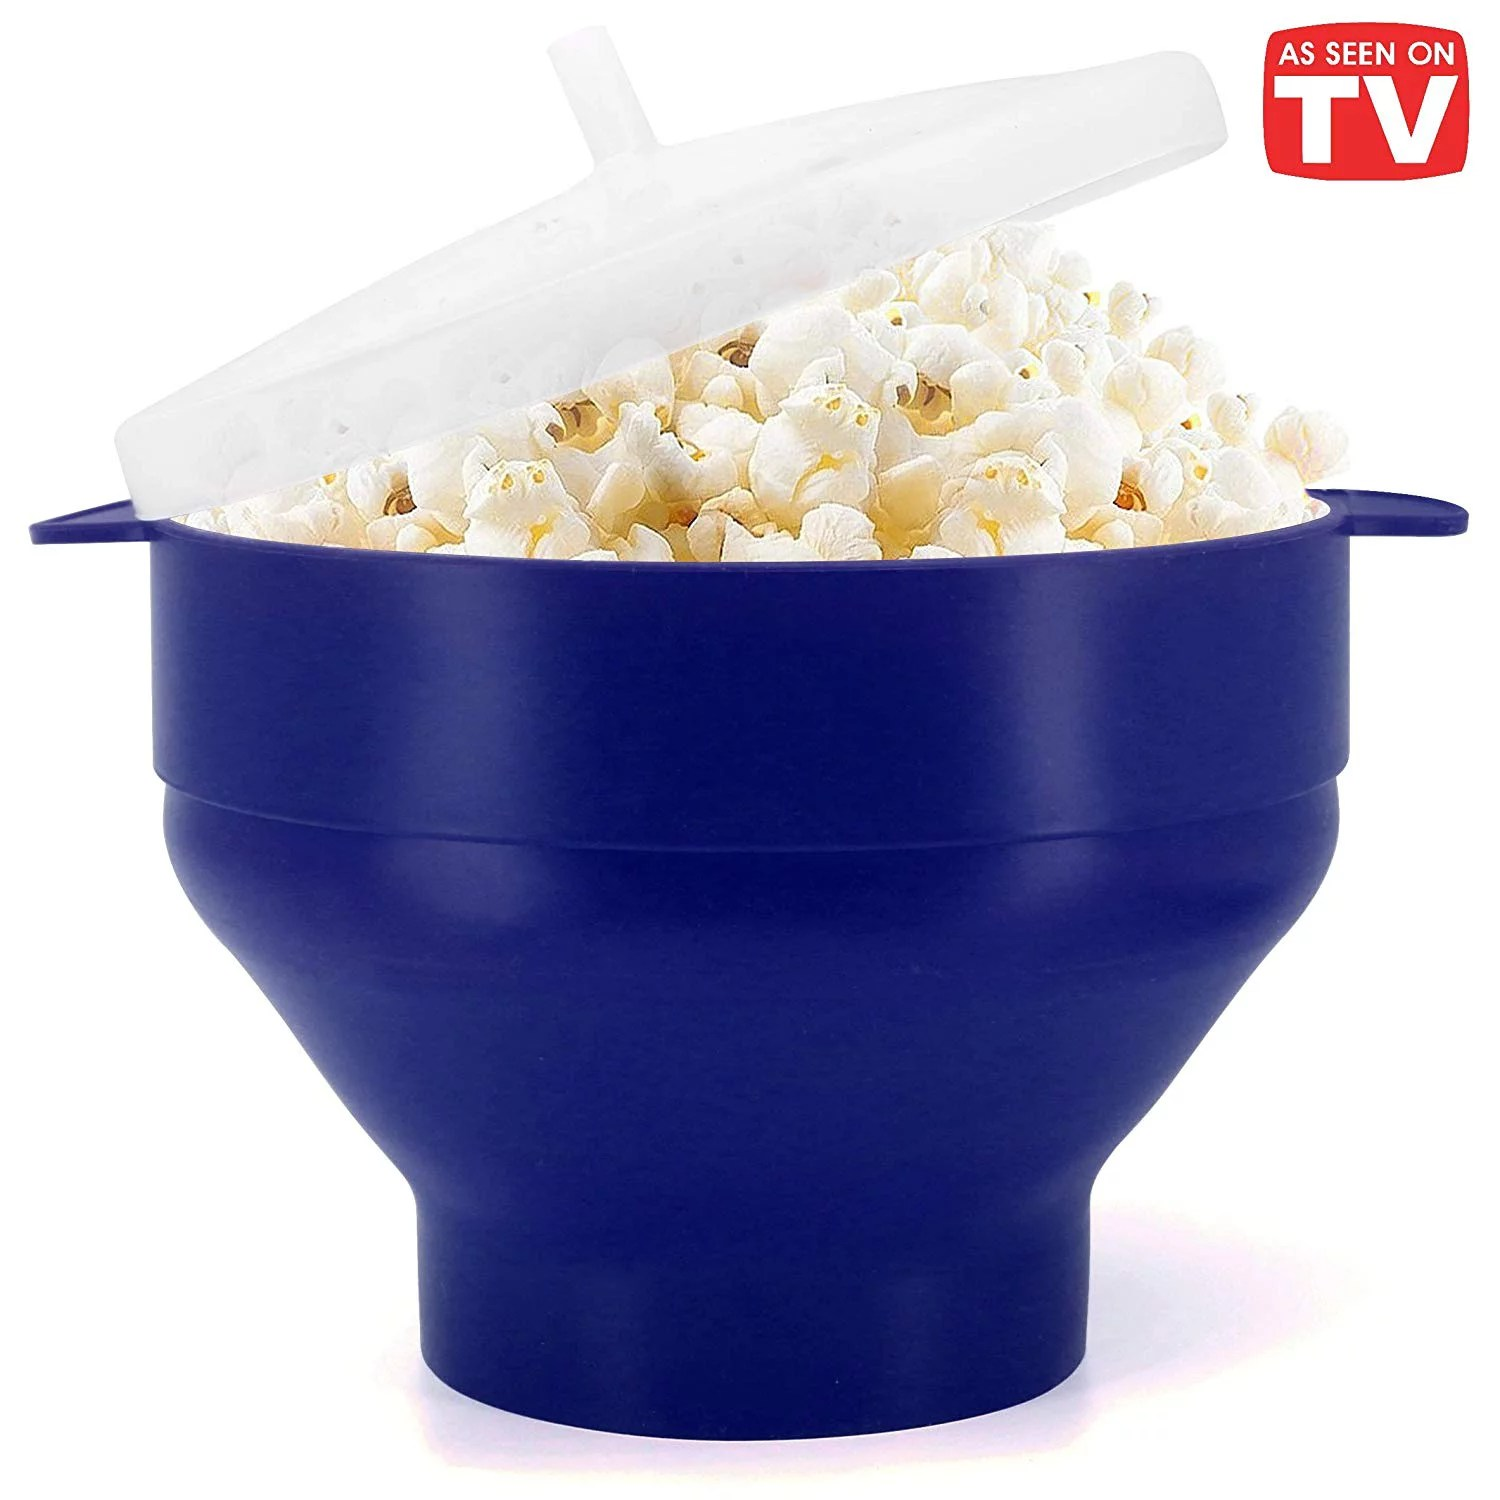 microwave popcorn popper bpa free silicone hot air microwavable popcorn maker bowl blue